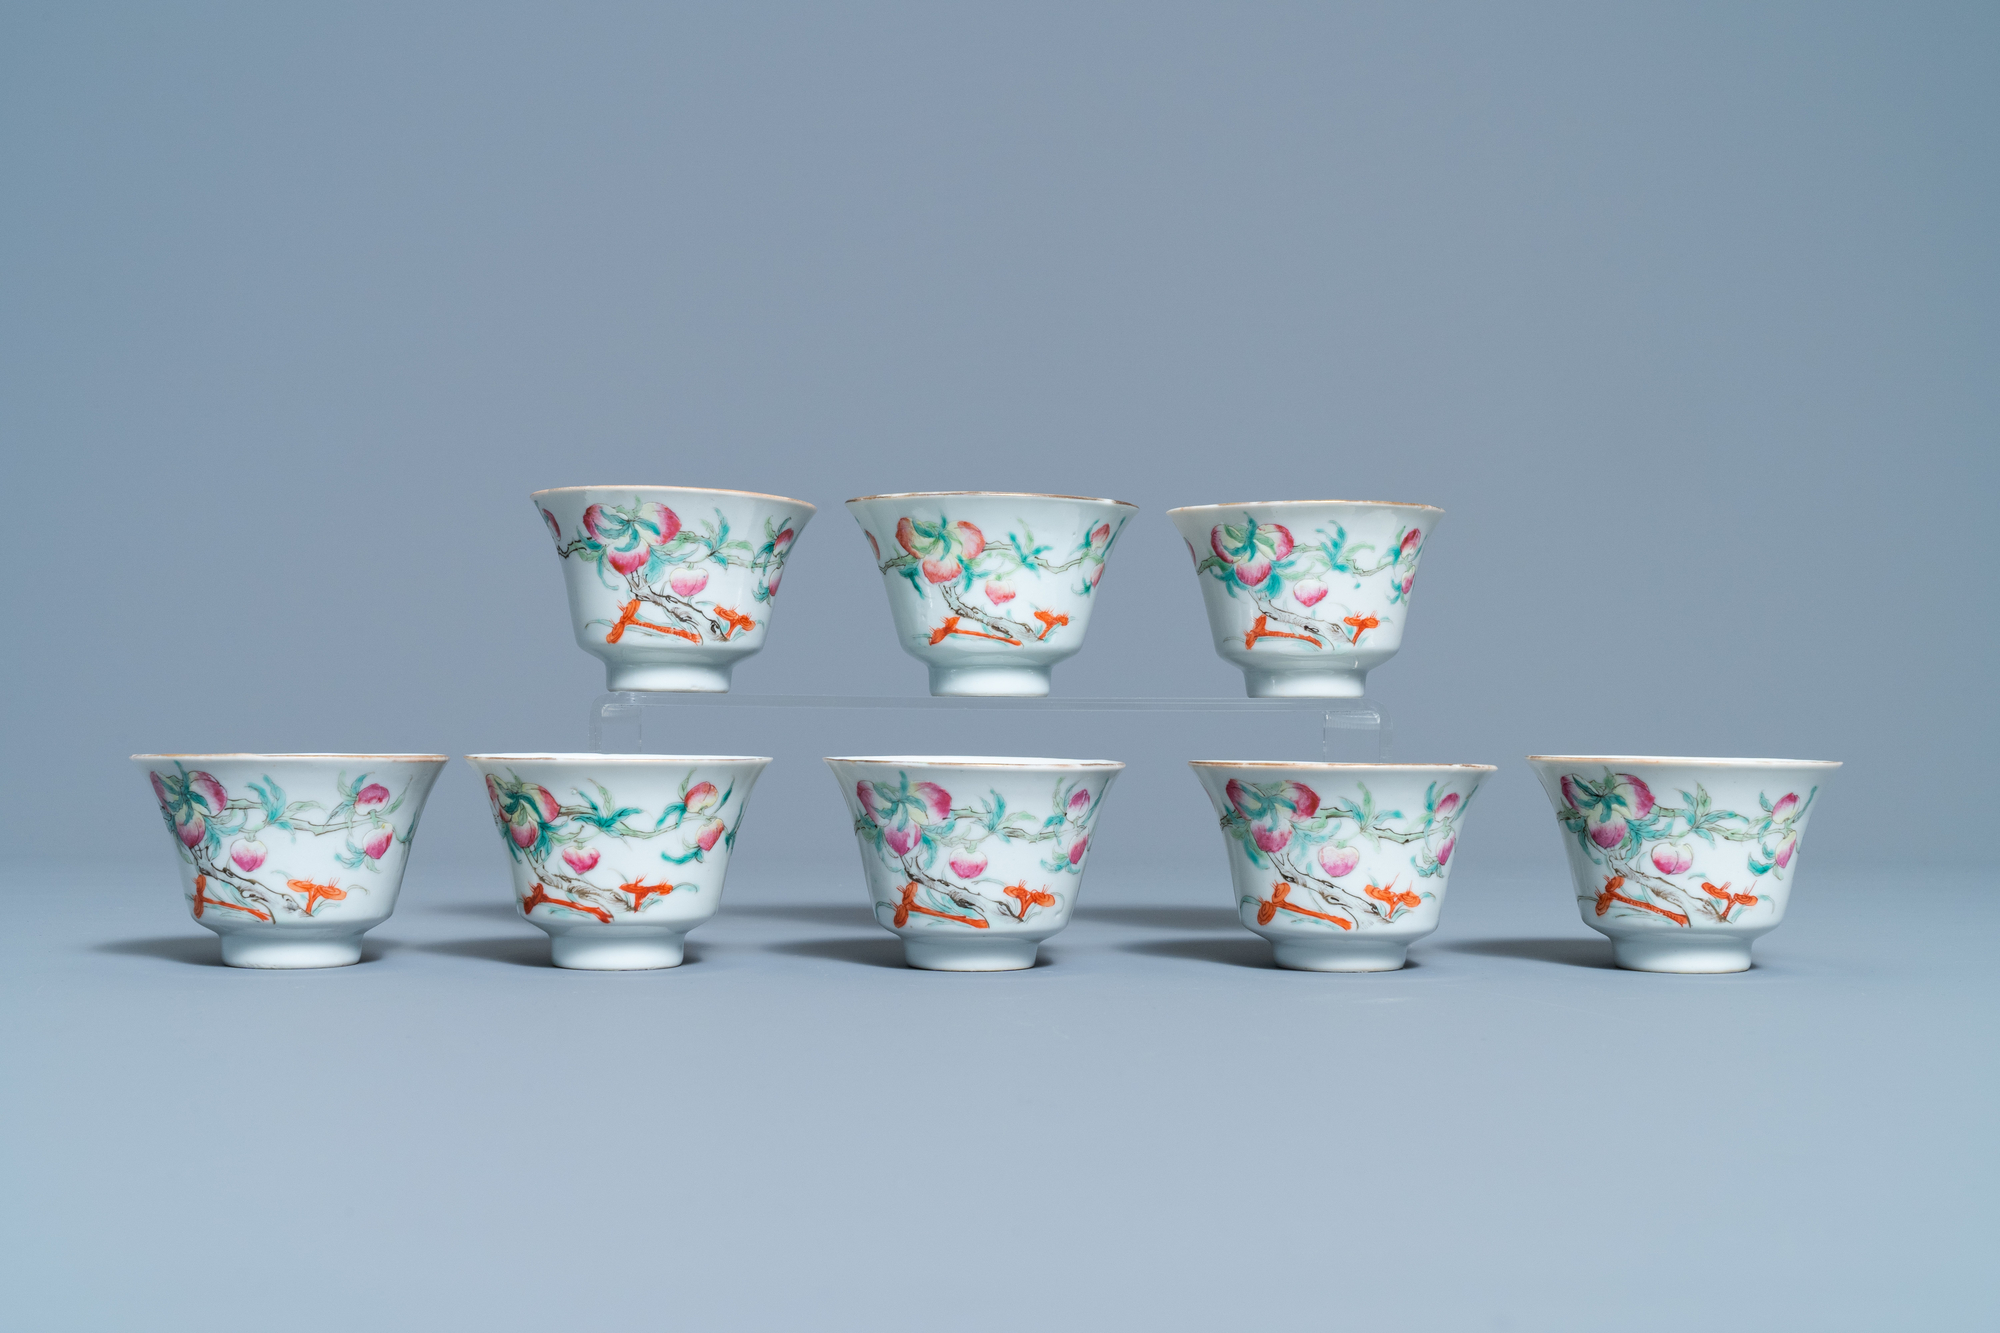 Eight Chinese famille rose 'nine peach' bowls, Hui Tong Zhen Pin mark, 19/20th C. - Image 2 of 7